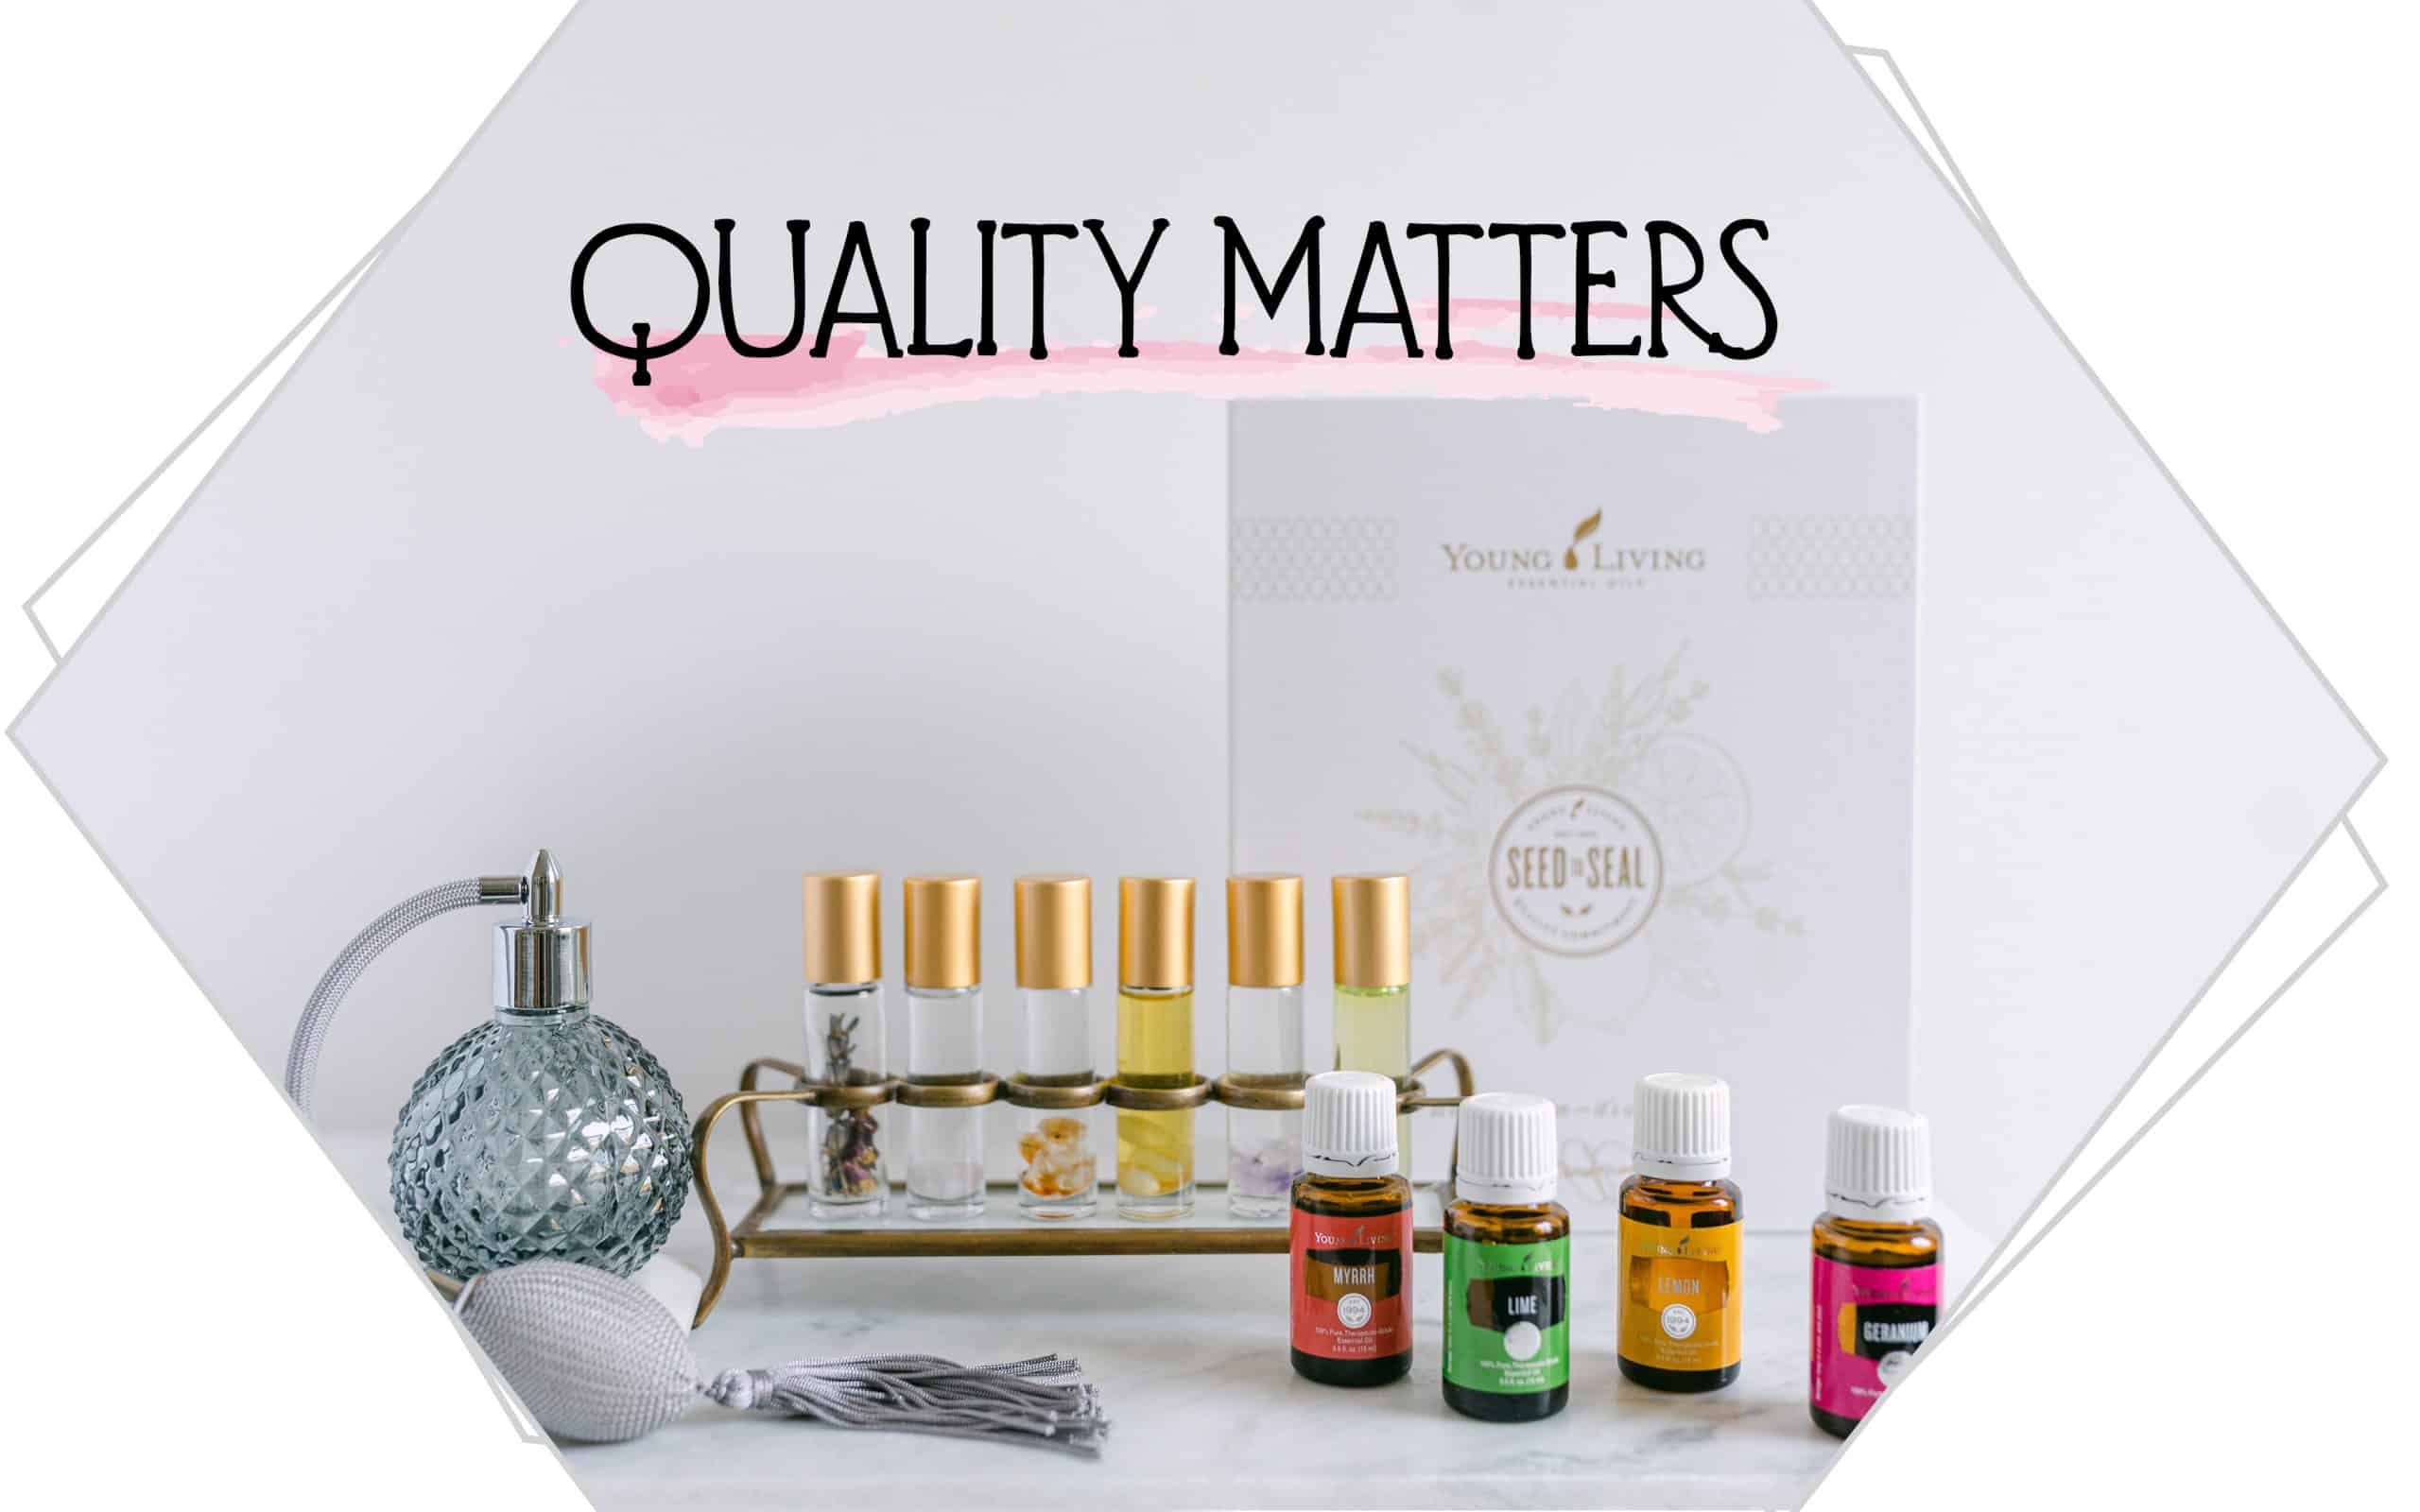 perfume bottles and essential oils with the caption Quality Matters written on a white background